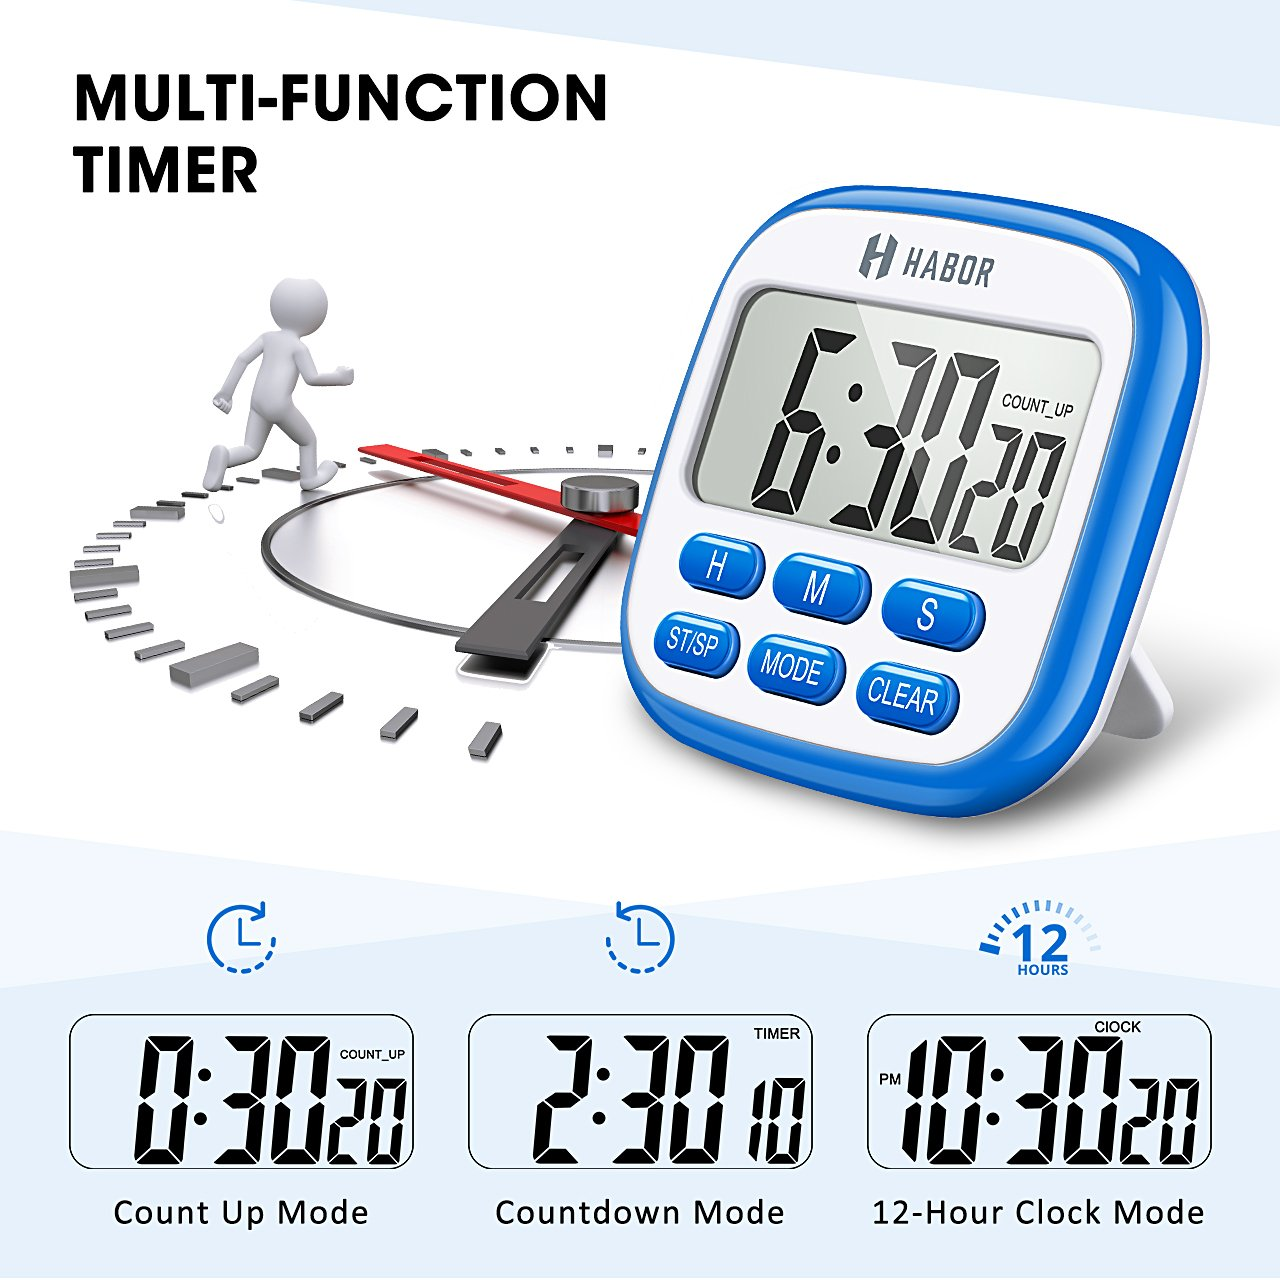 Strong Magnet Back Cooking Timer Count-Up /& Count Down for Cooking Baking Sports Games Office Habor HCP4L Kitchen Cooking Timers Memory Function Habor Digital Kitchen Timer Large Display 12-Hour Display Clock Loud Alarm